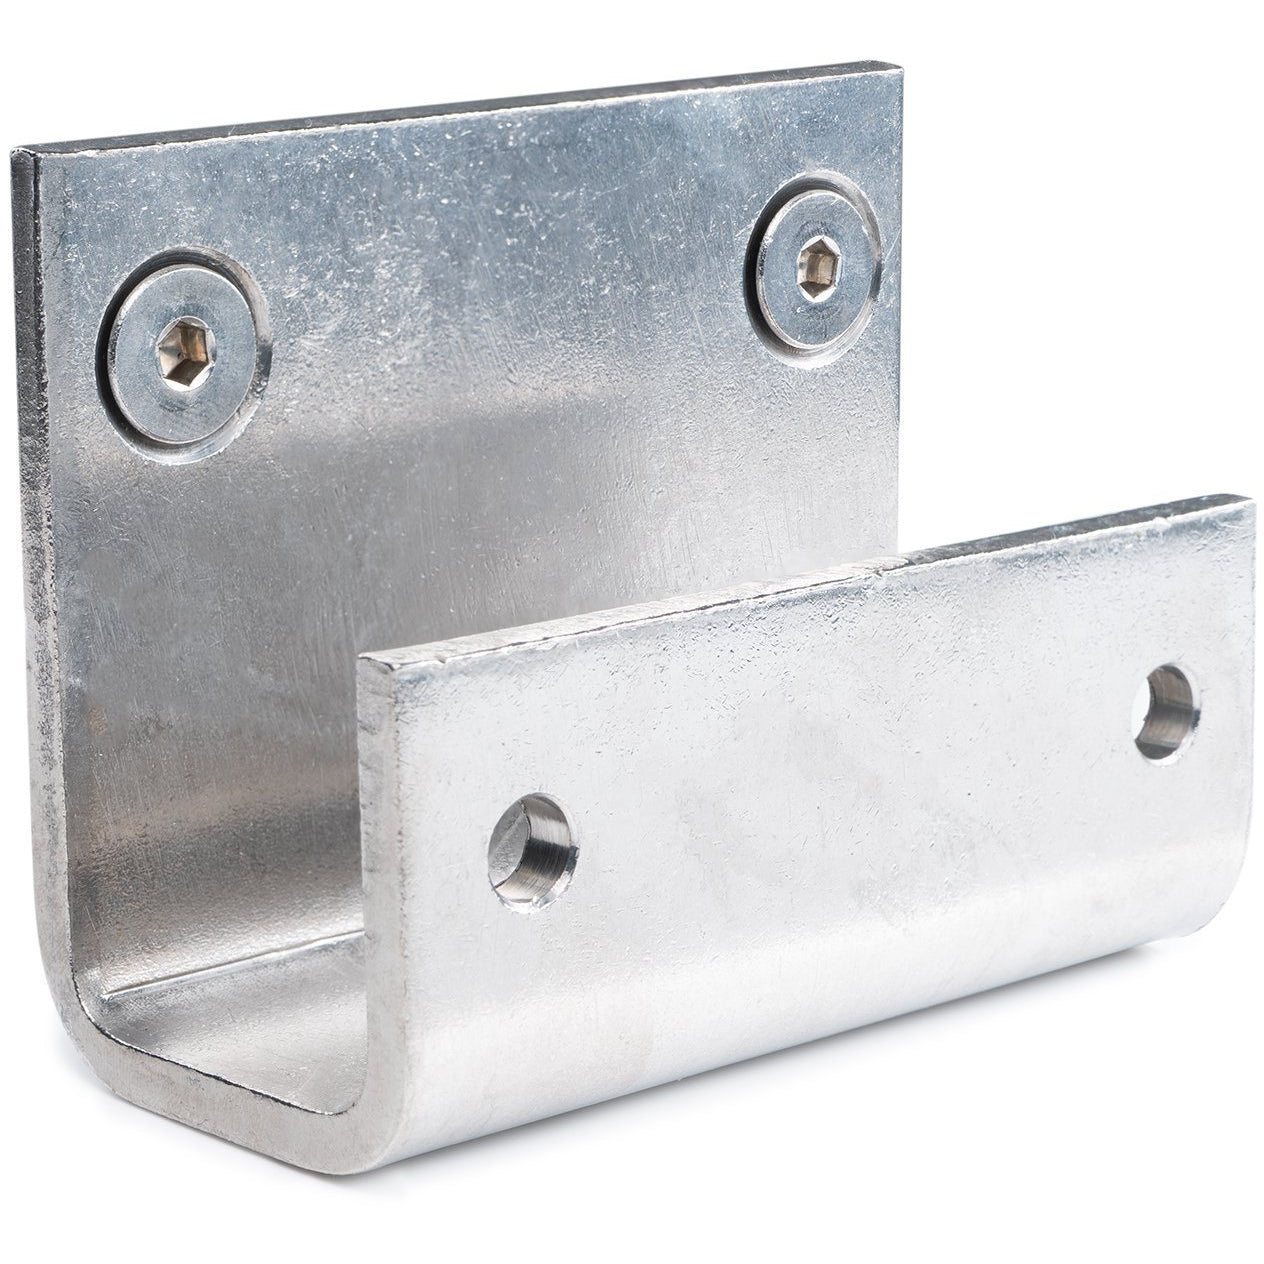 Stainless Steel Hang-On Bracket for BVV Extraction Racks Shop All Categories BVV 1.5-inch